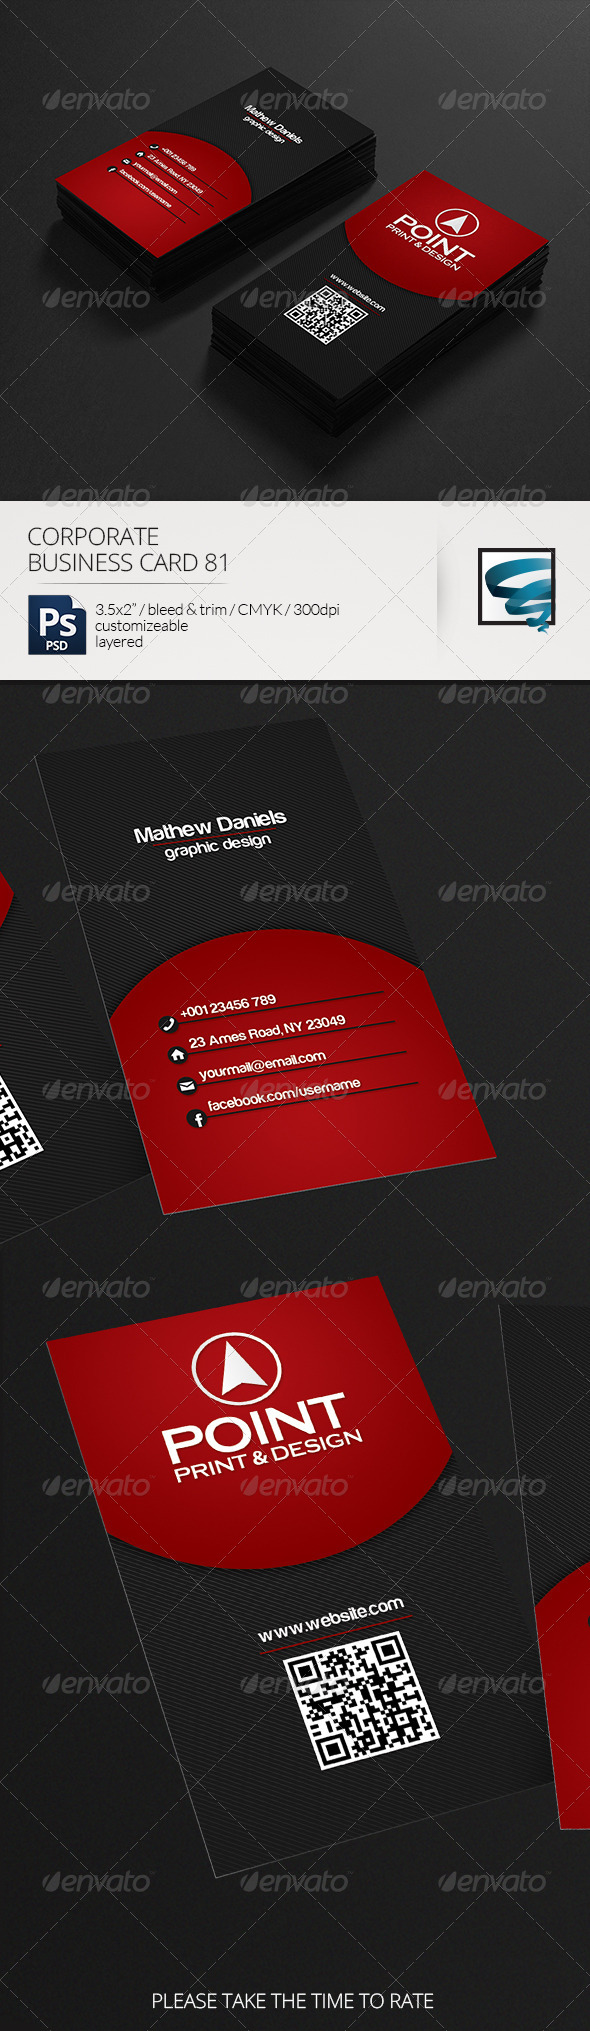 GraphicRiver Corporate Business Card 81 7132476